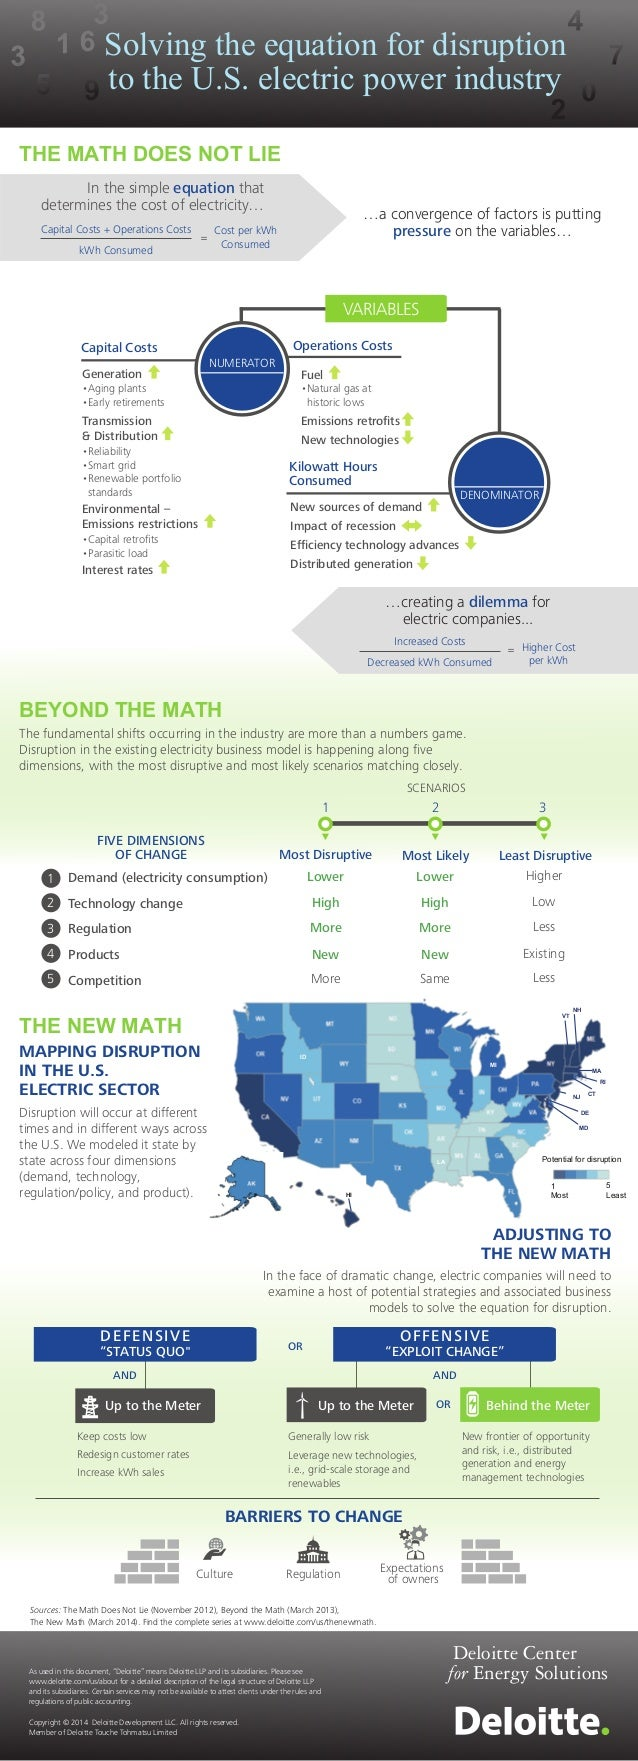 Solving the equation for disruption to the U.S. electric power industry Sources: The Math Does Not Lie (November 2012), Be...